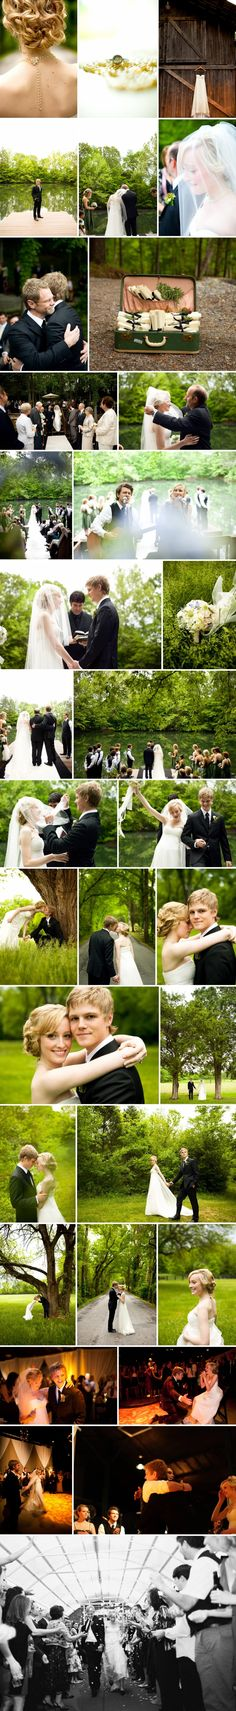 One of the cutest weddings ever! Caleb and Julia Chapman :)